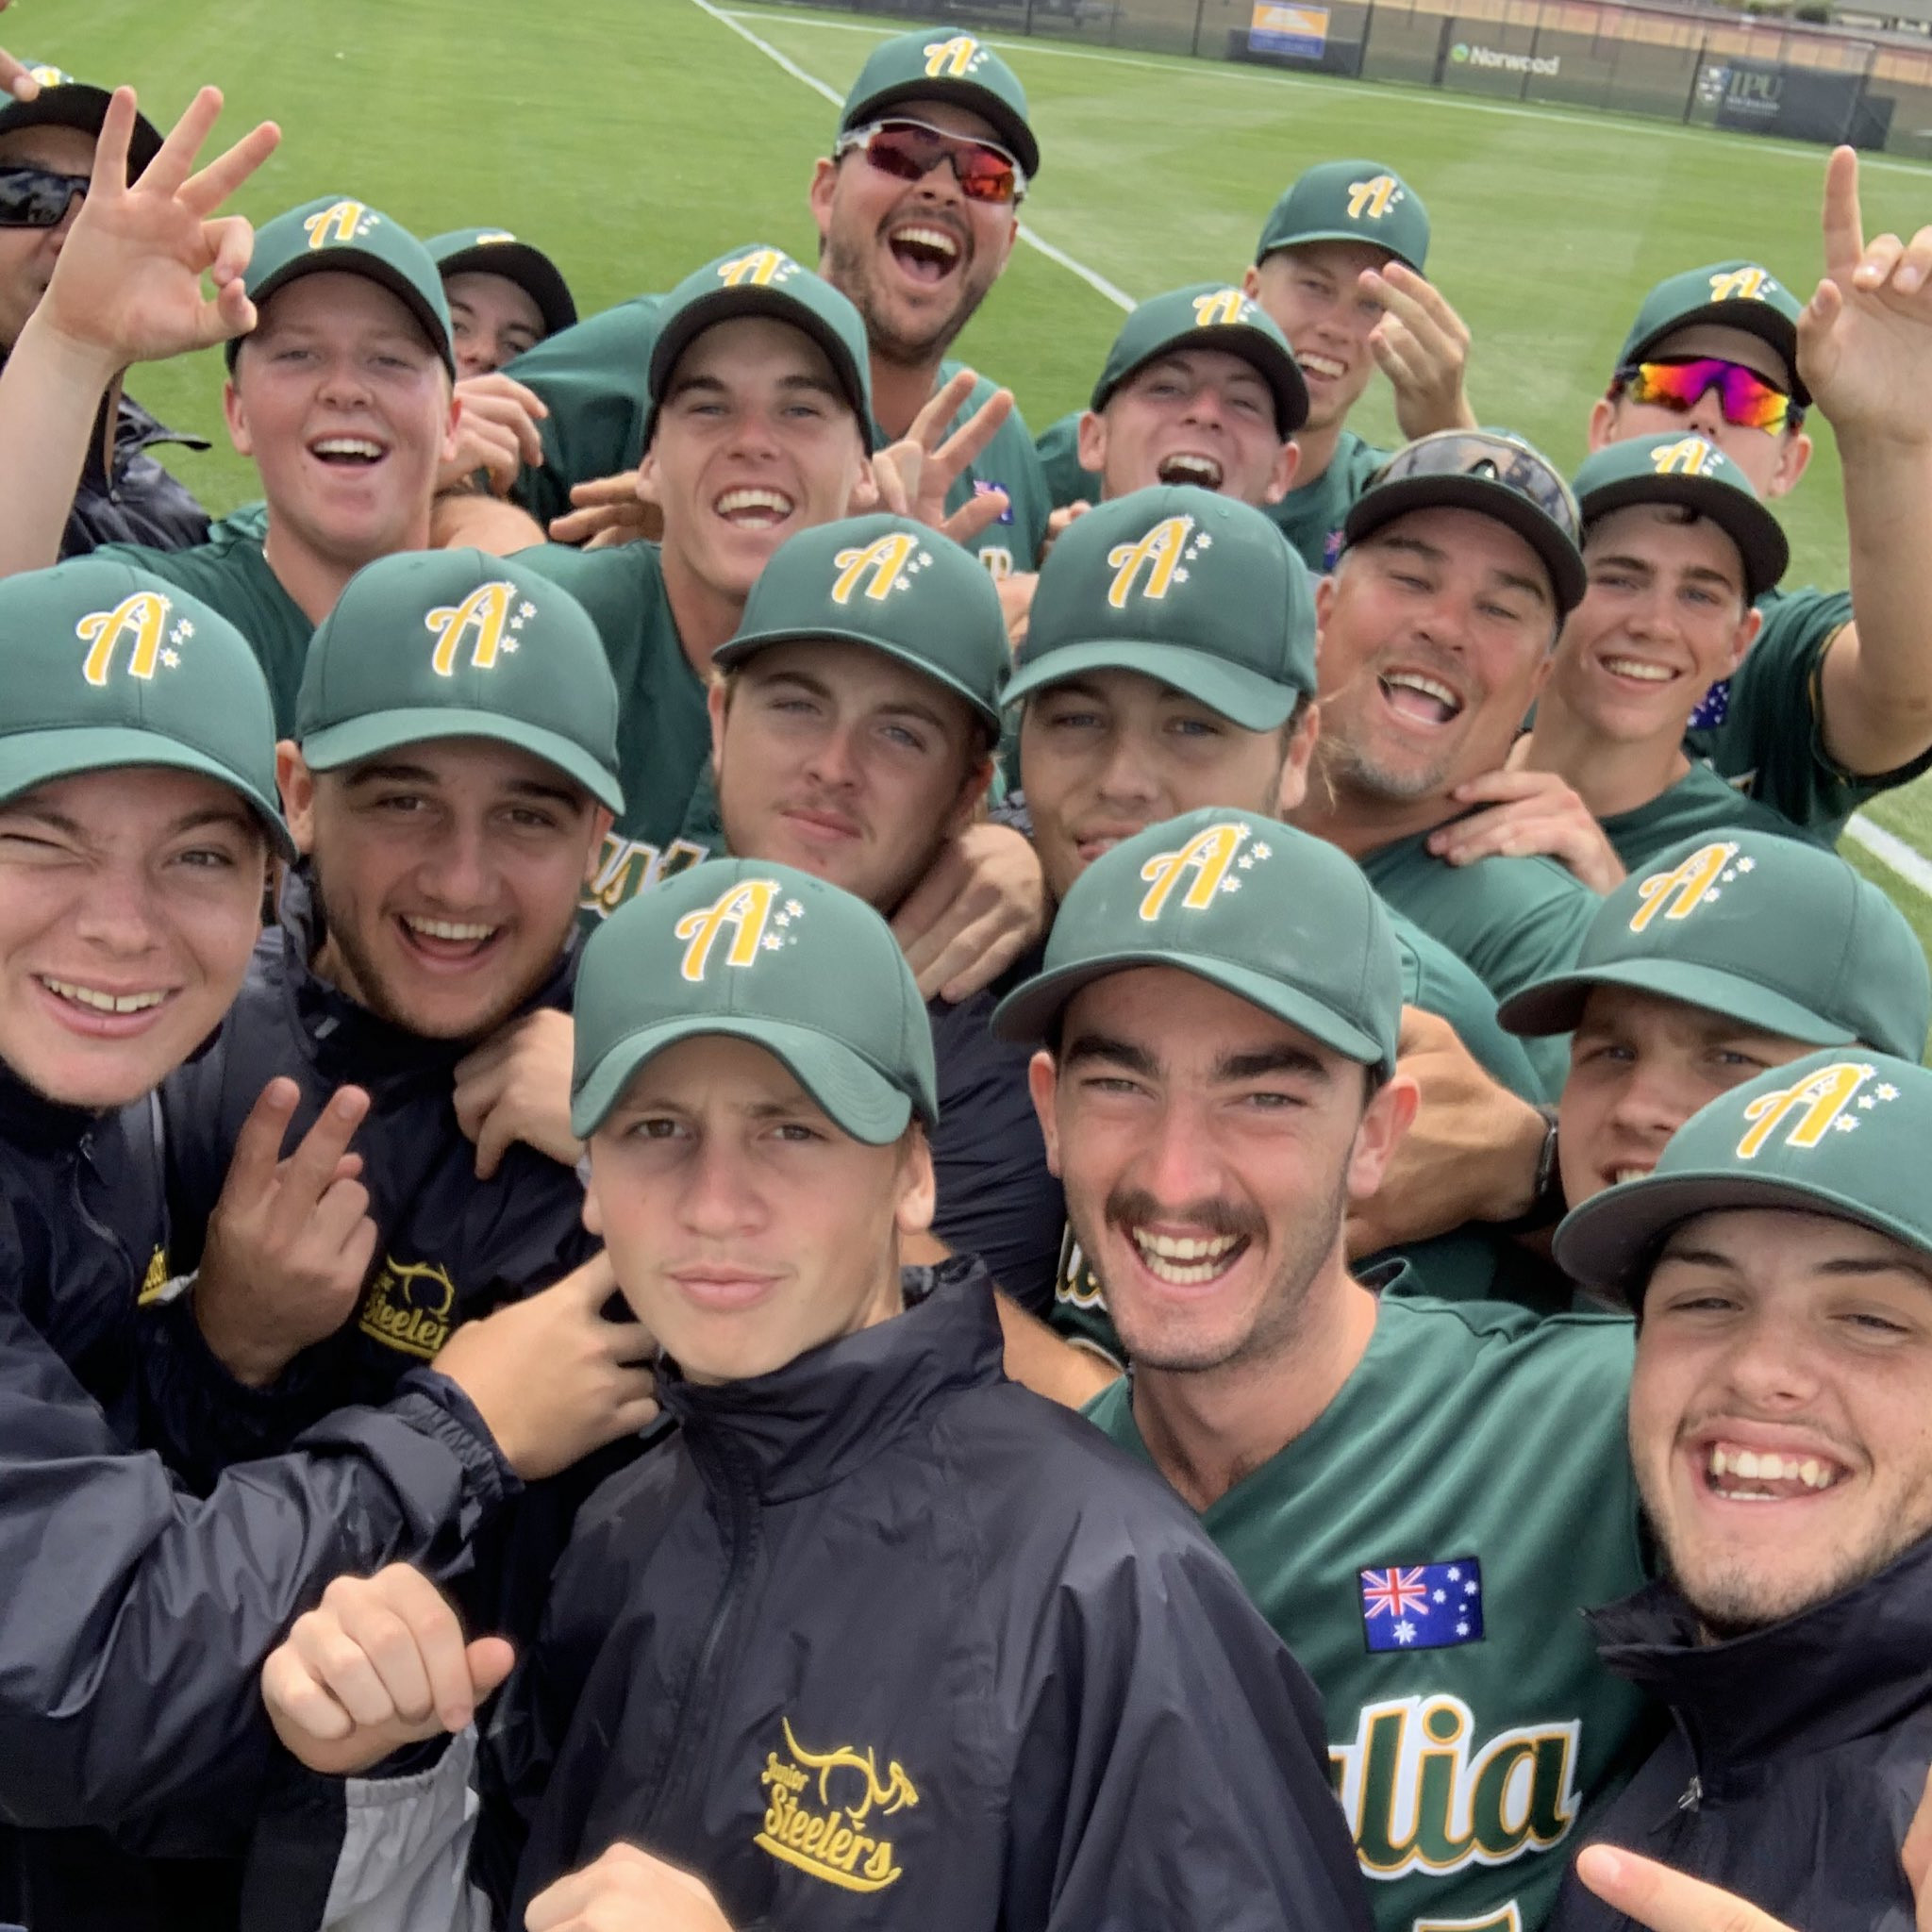 Reigning champions Australia remain undefeated at Under-18 Men's Softball World Cup